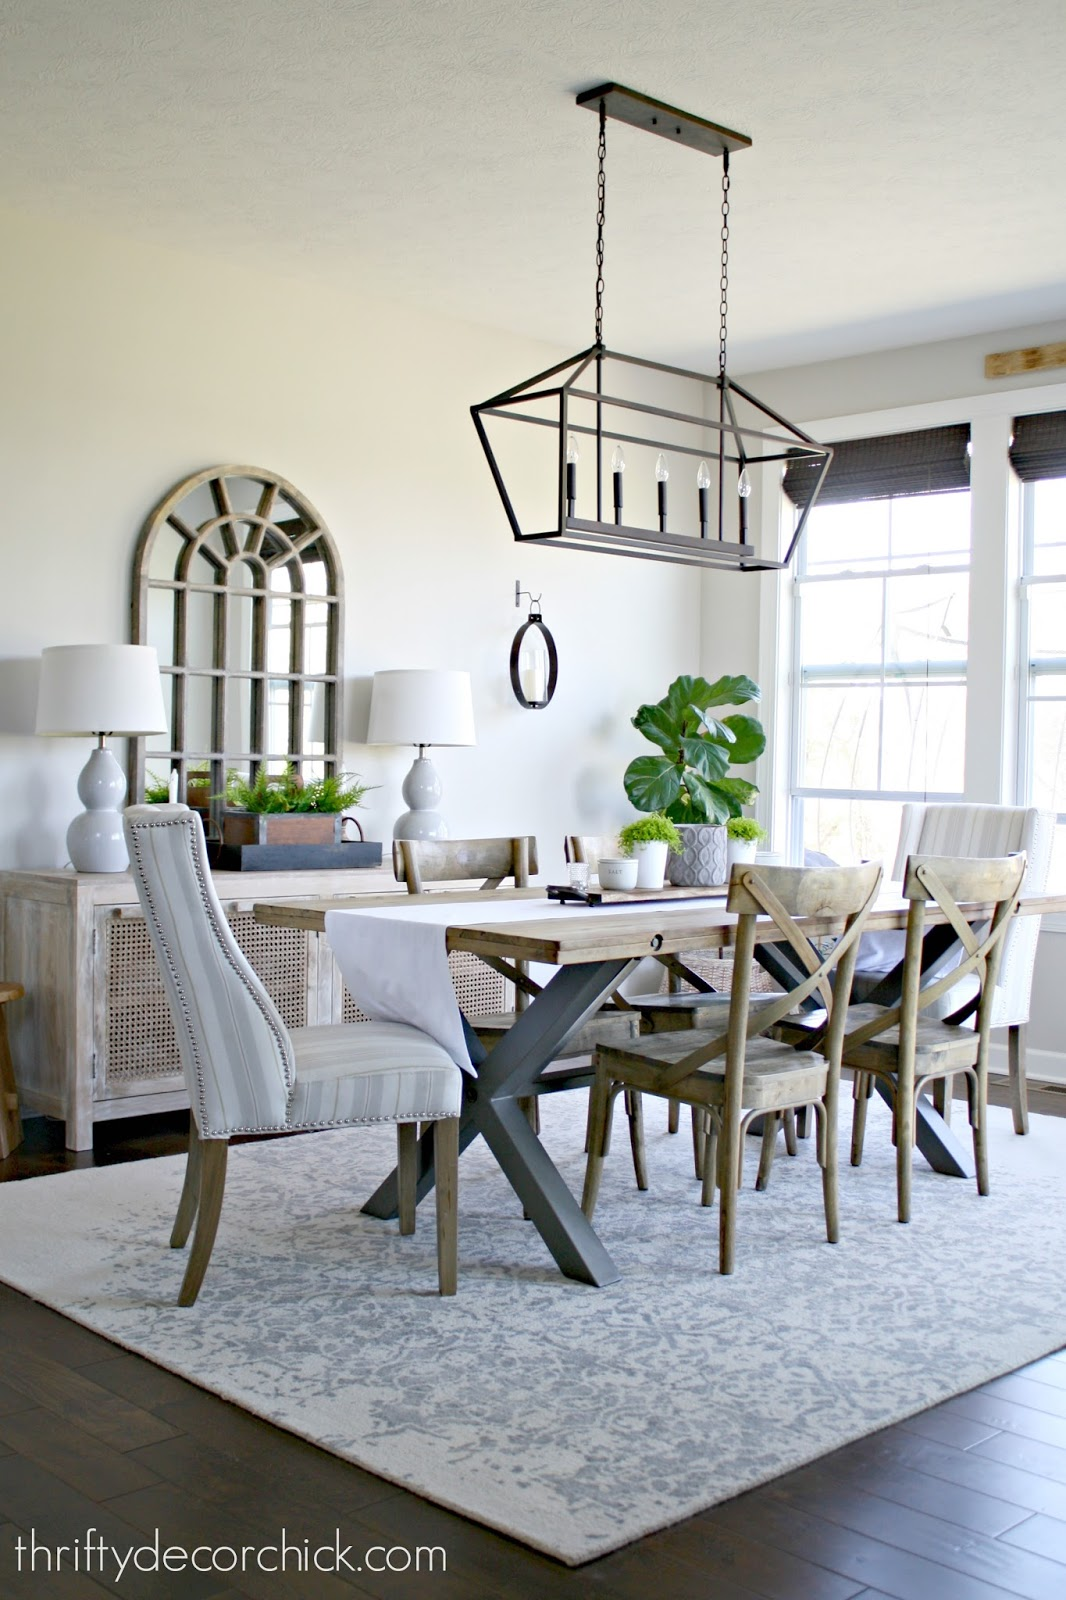 Dining room with light wood and metal accents